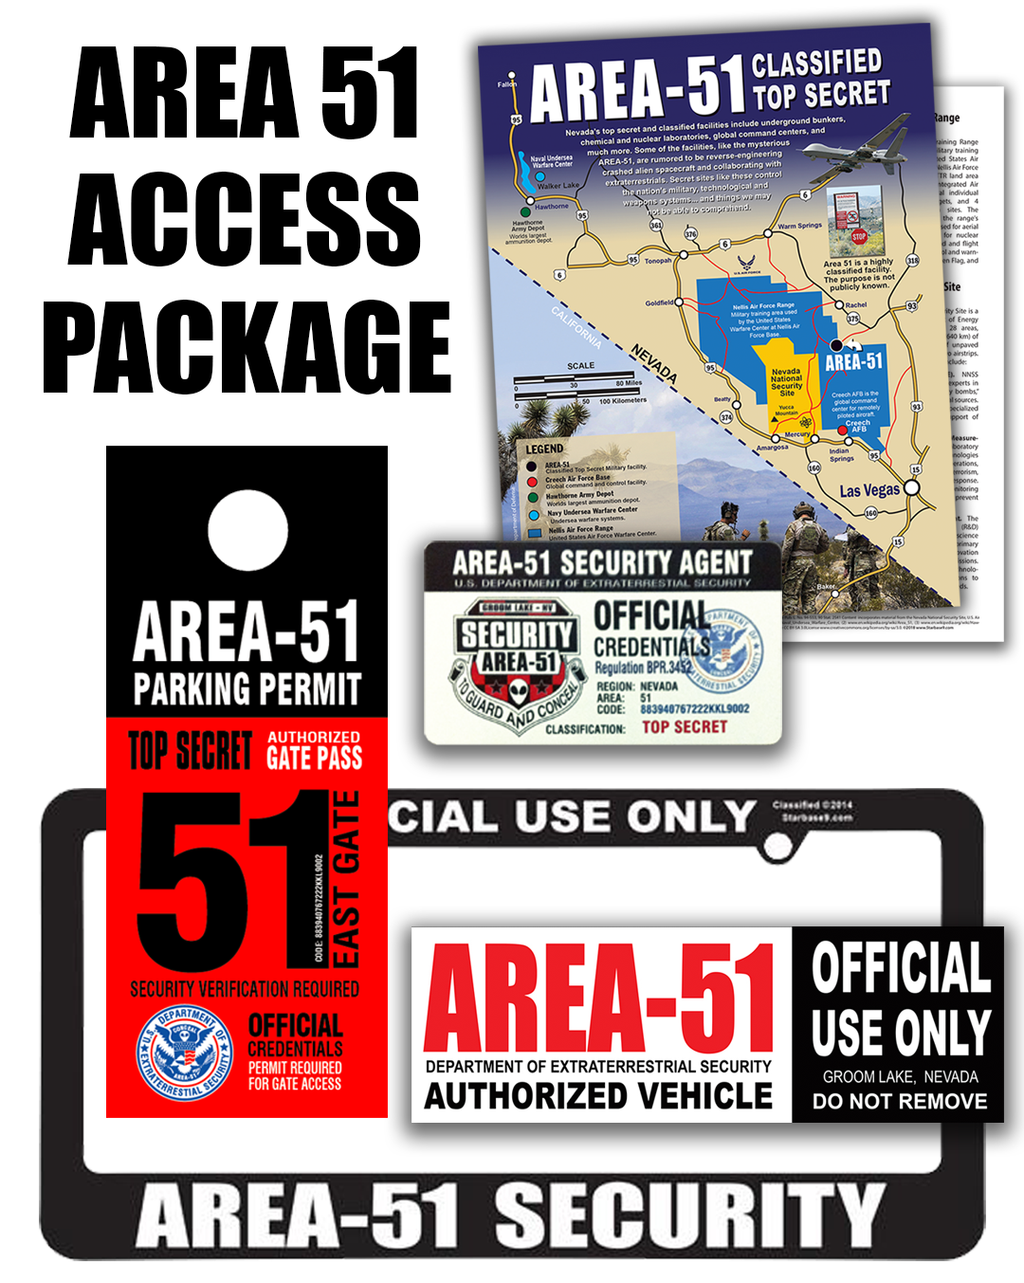 Area 51 Access Package